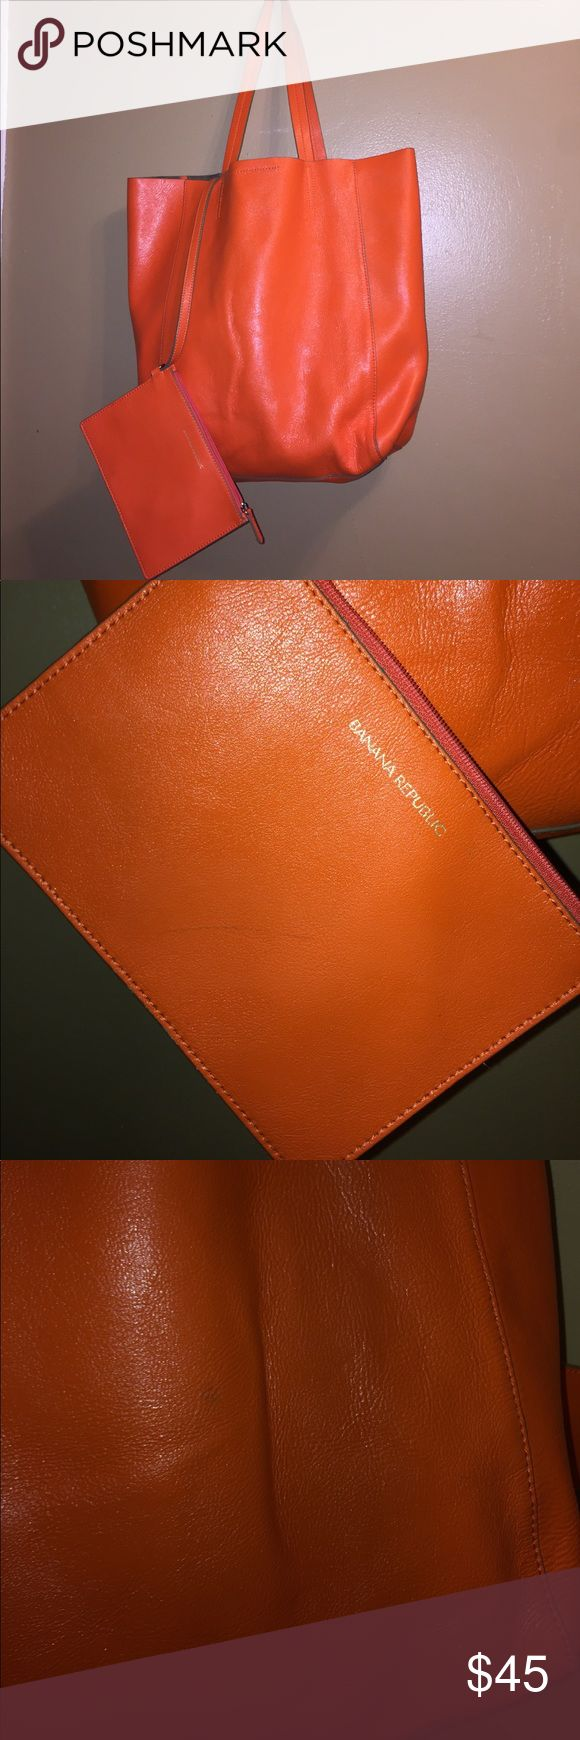 """Banana Republic Ashbury Orange leather tote bag Banana Republic Ashbury tote. Beautiful bright orange tote bag. Perfect color for the summer. 100% Leather. Light mark on the exterior; few pen markings inside and two light pen marks on the inner zip pouch. See photos. Measures 17.5"""" x 15"""" with 9.5"""" strap drop. Otherwise in great condition. Banana Republic Bags Totes"""